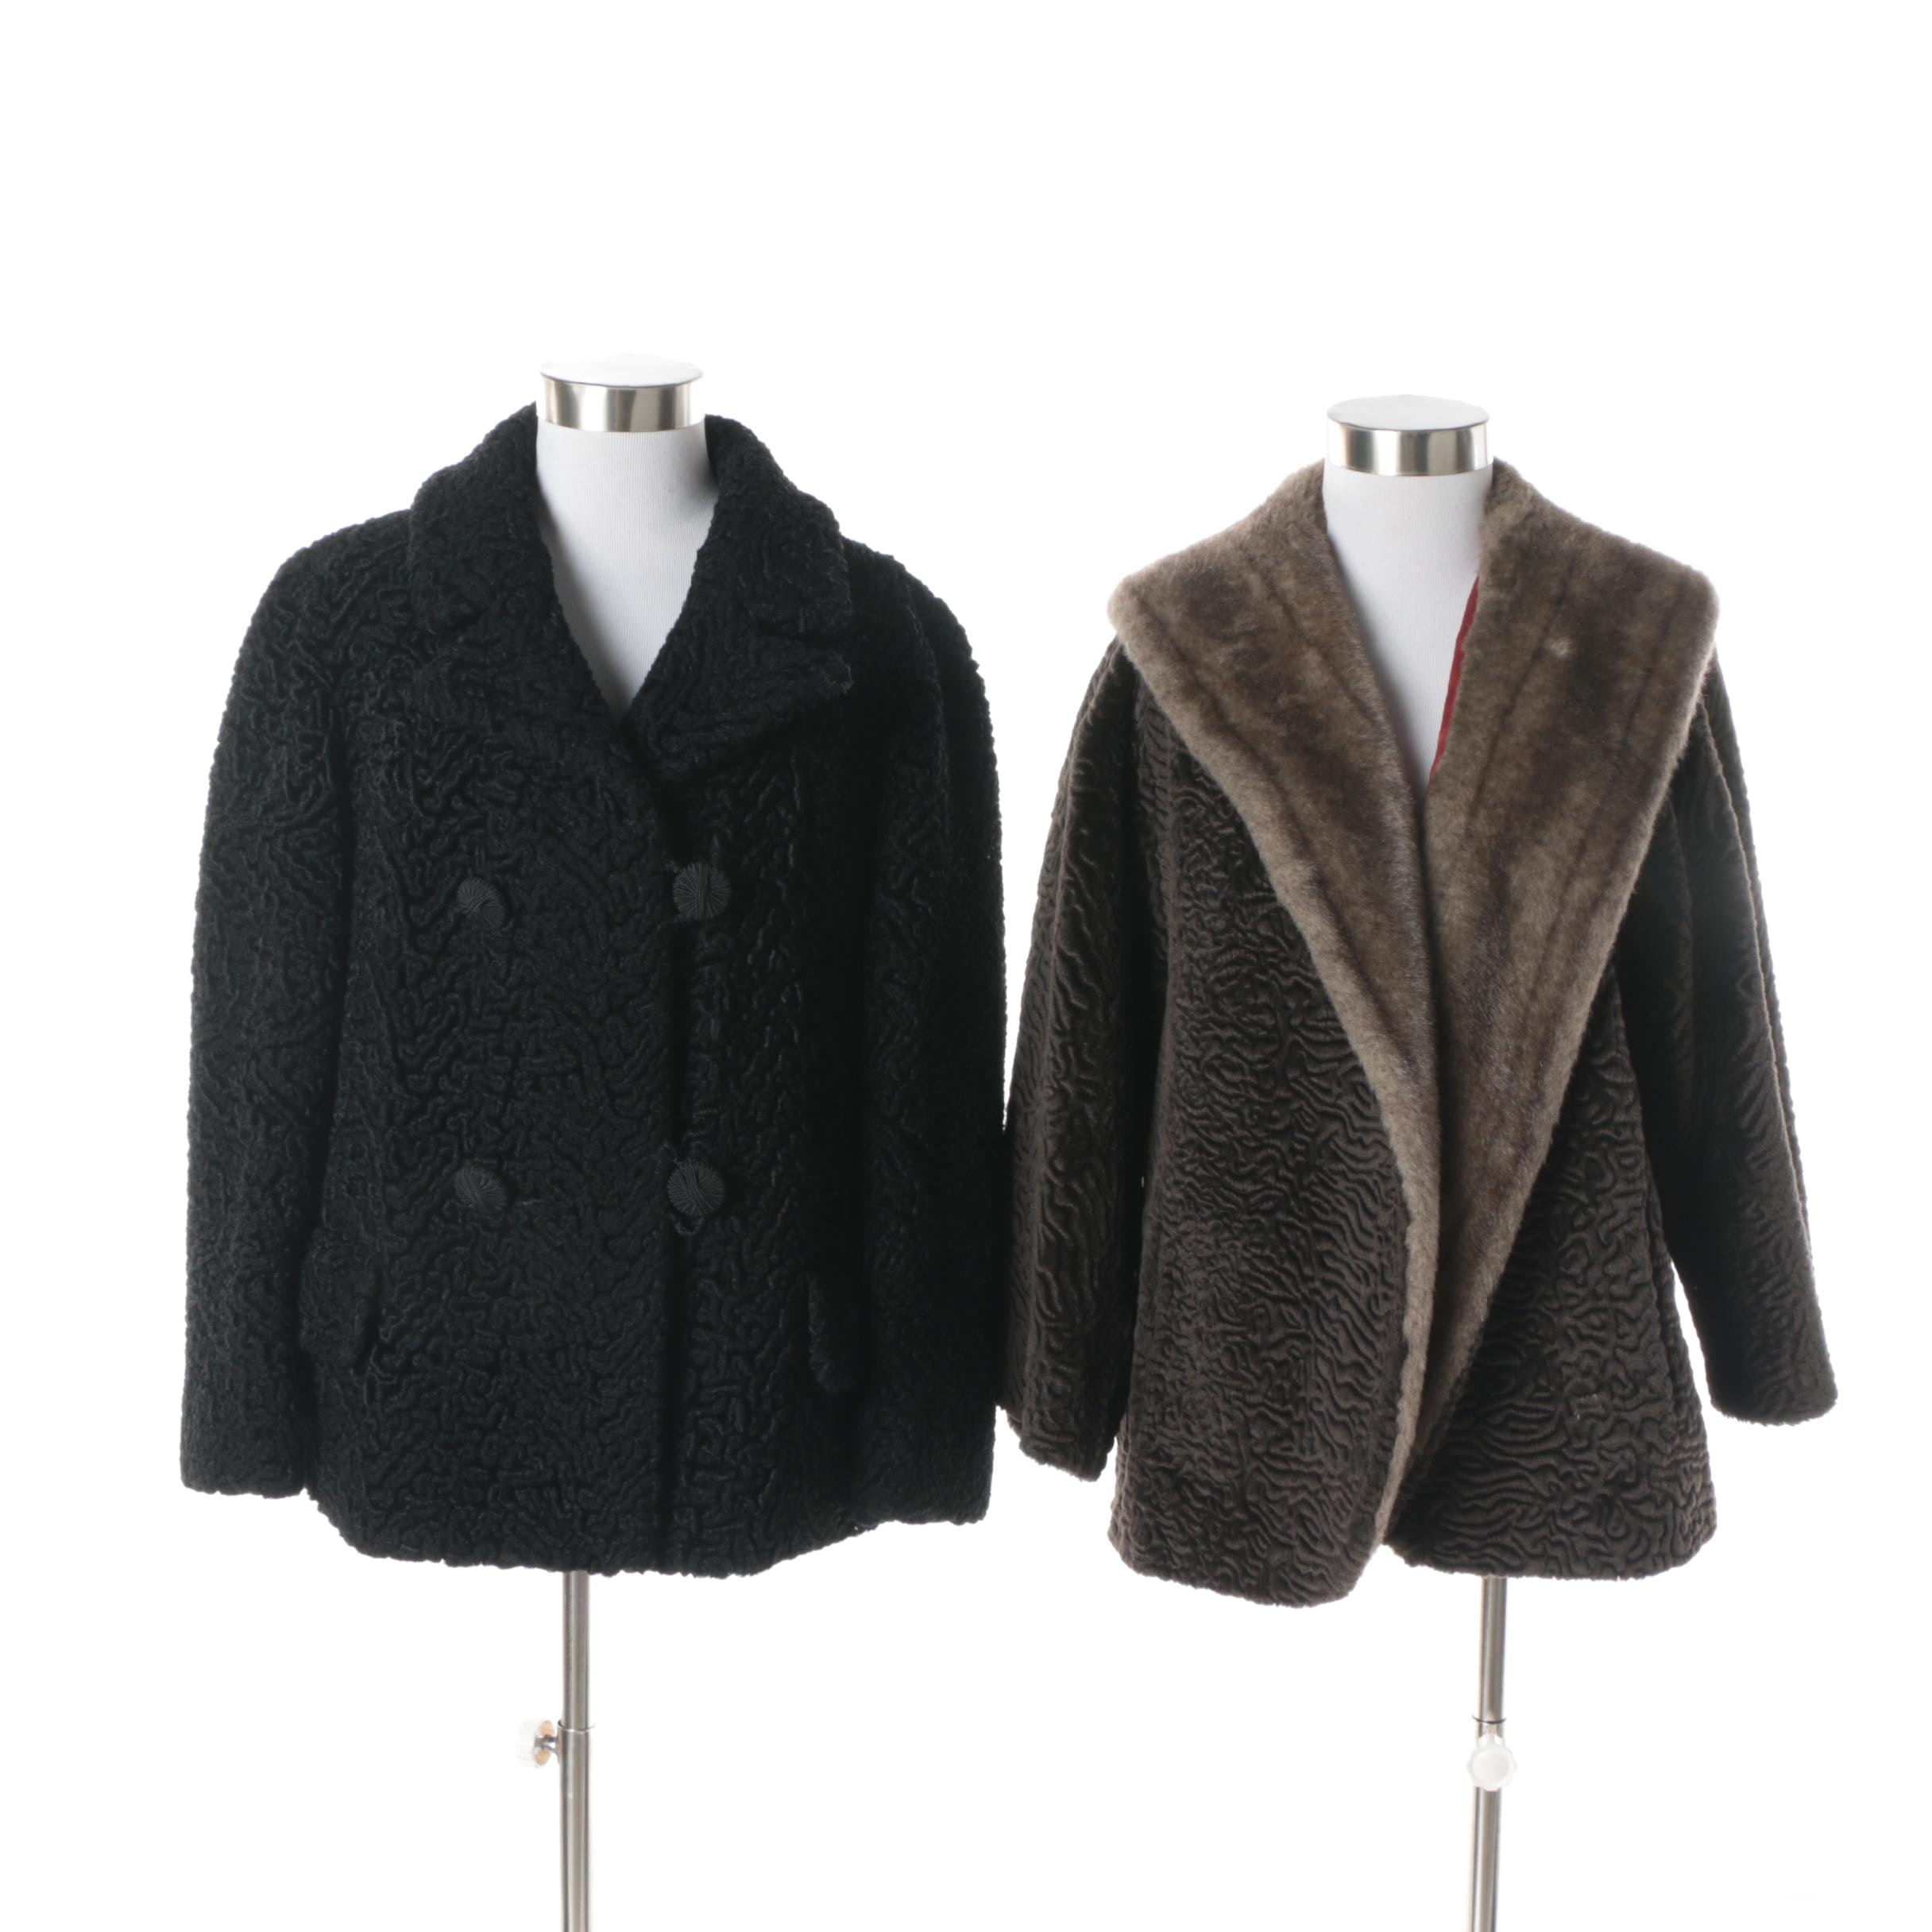 Women's Vintage Coats Including a Borré by Fairmoor Faux Fur Coat